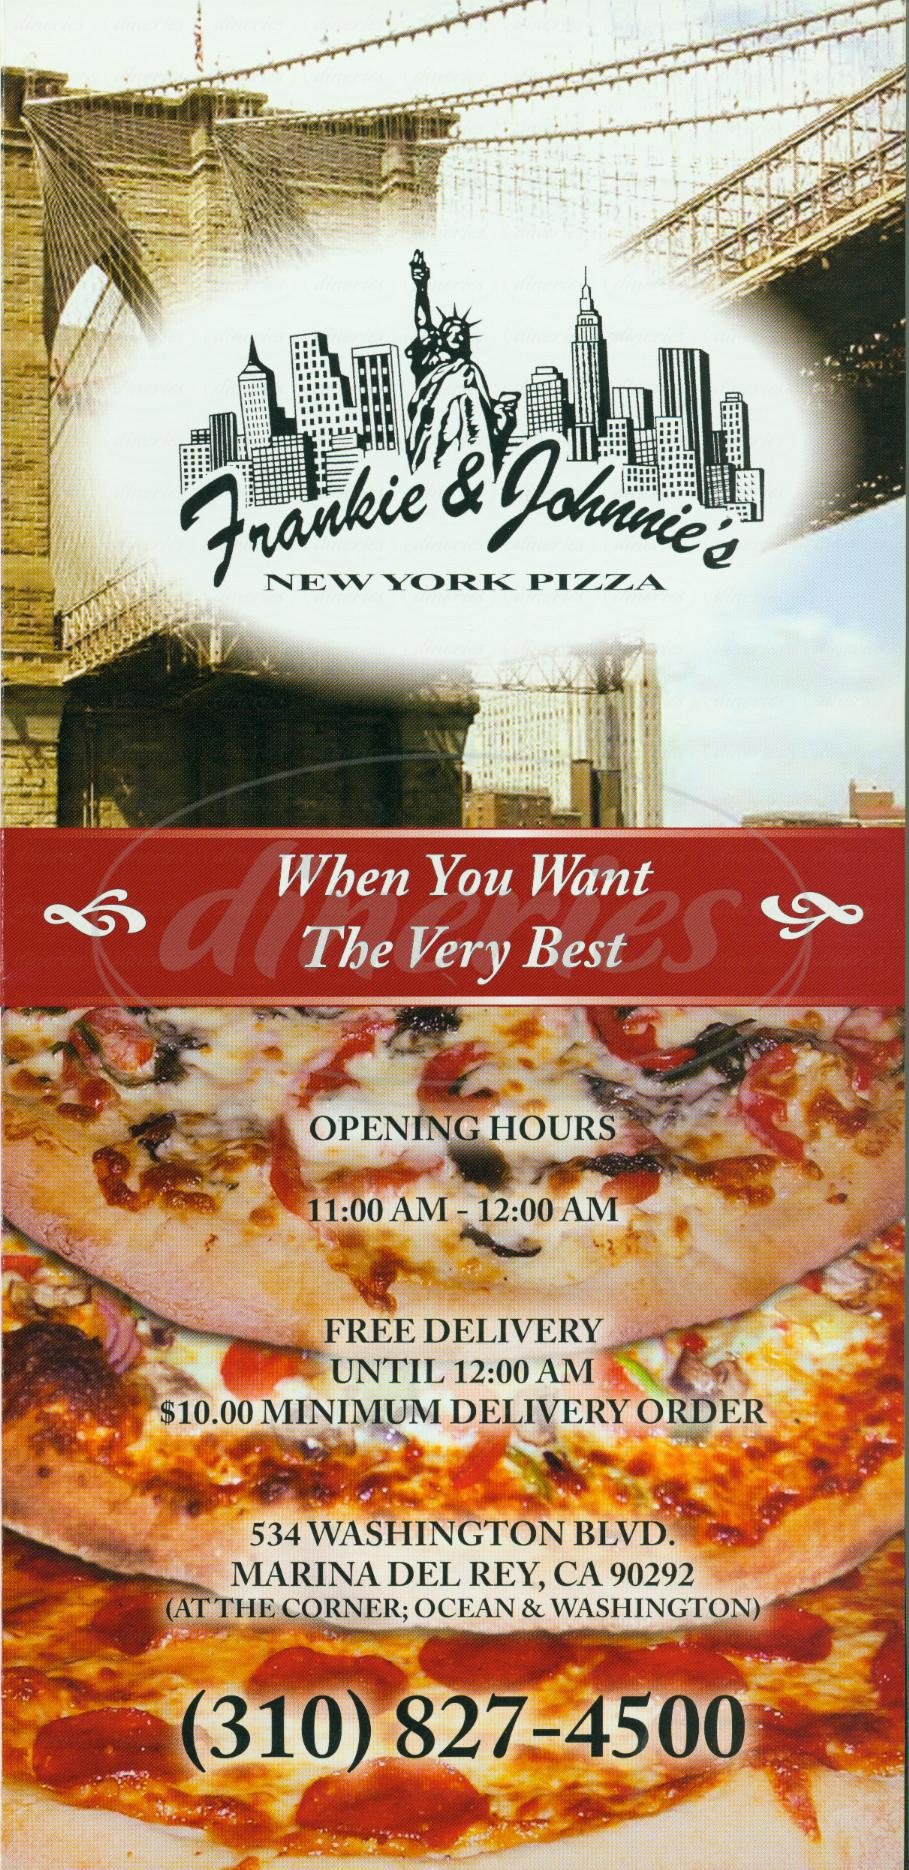 menu for Frankie & Johnnies New York Pizza